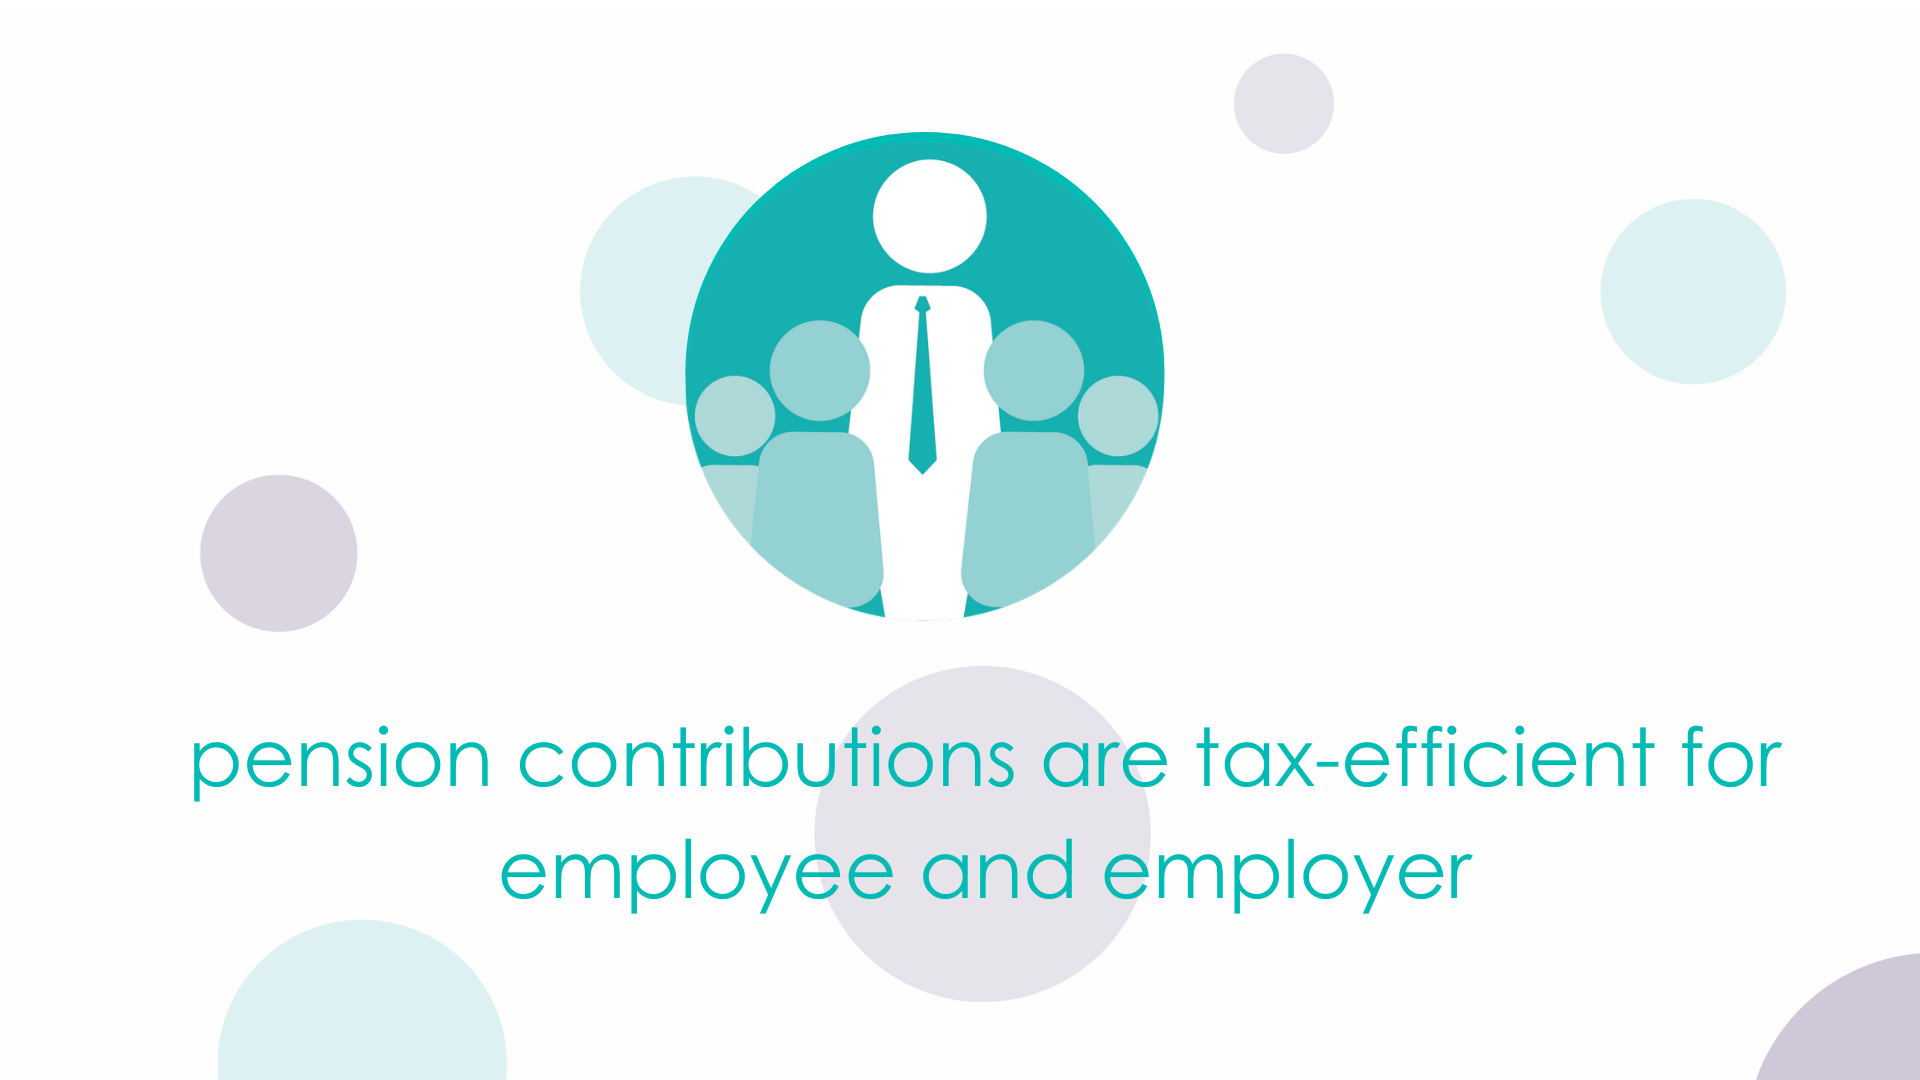 pension contributions are tax-efficient for employee and employer